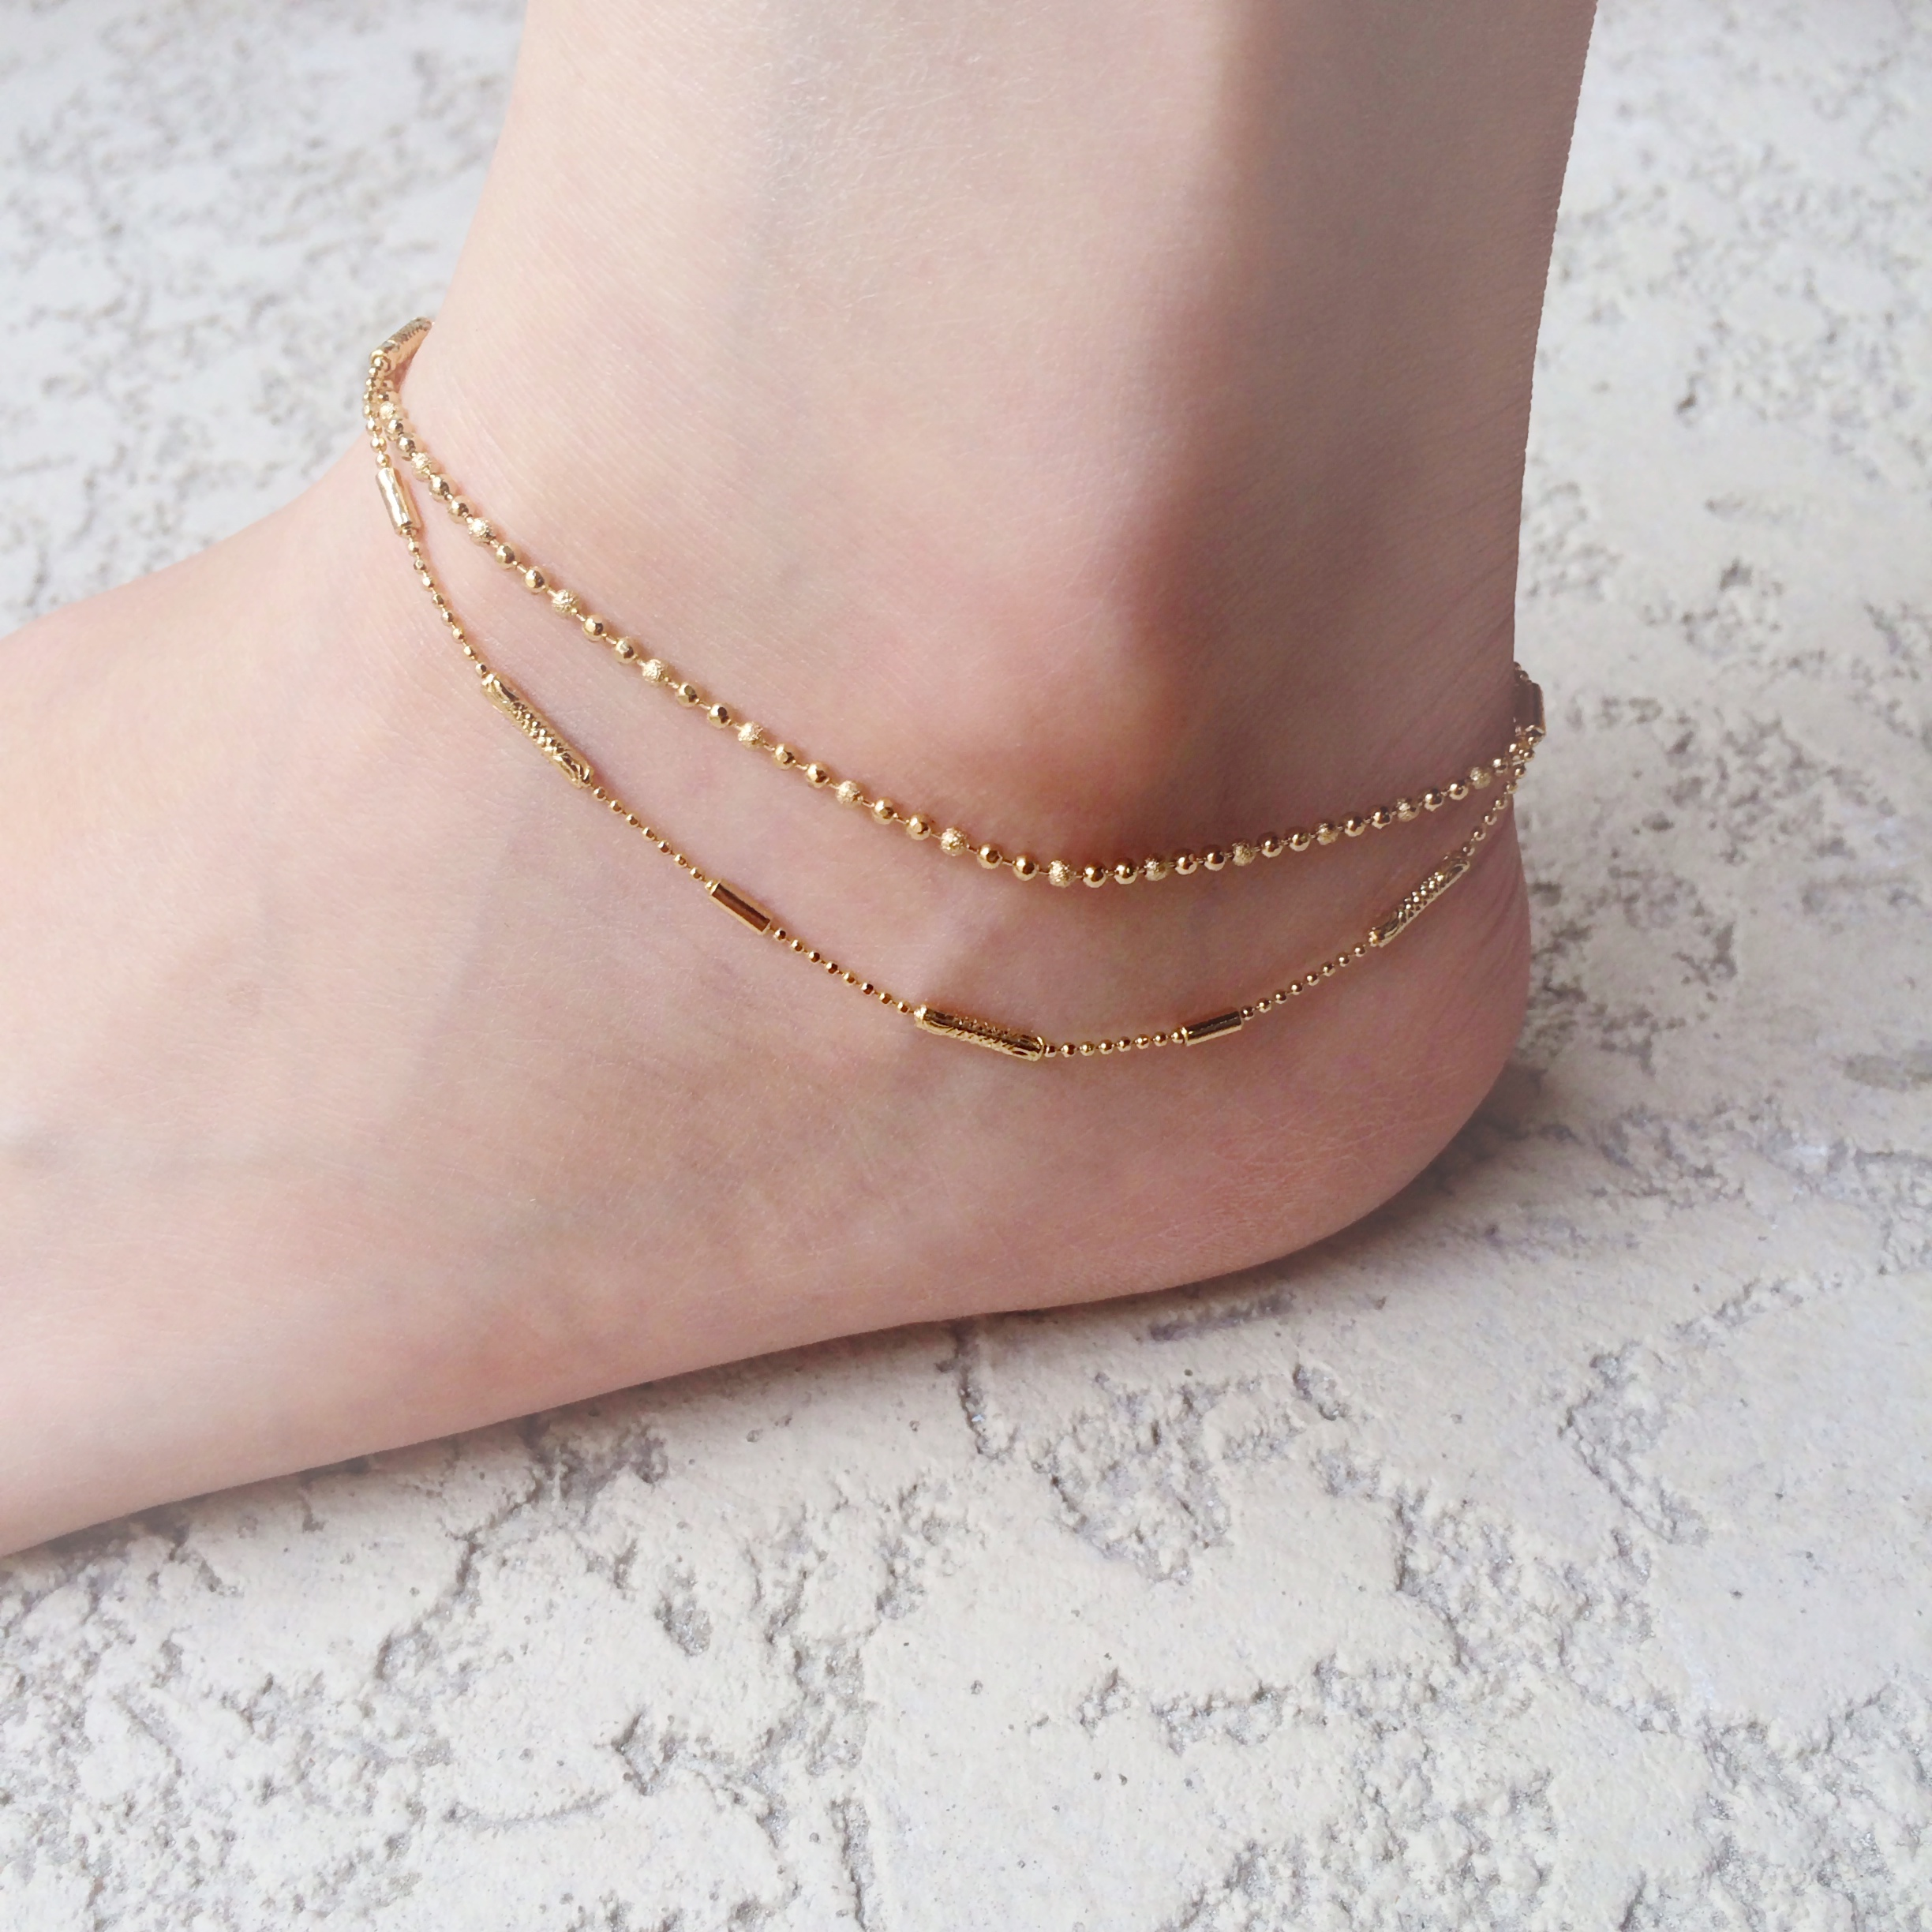 knit body il two fullxfull silver sterling gold anklet over genuine colorful chain products rows